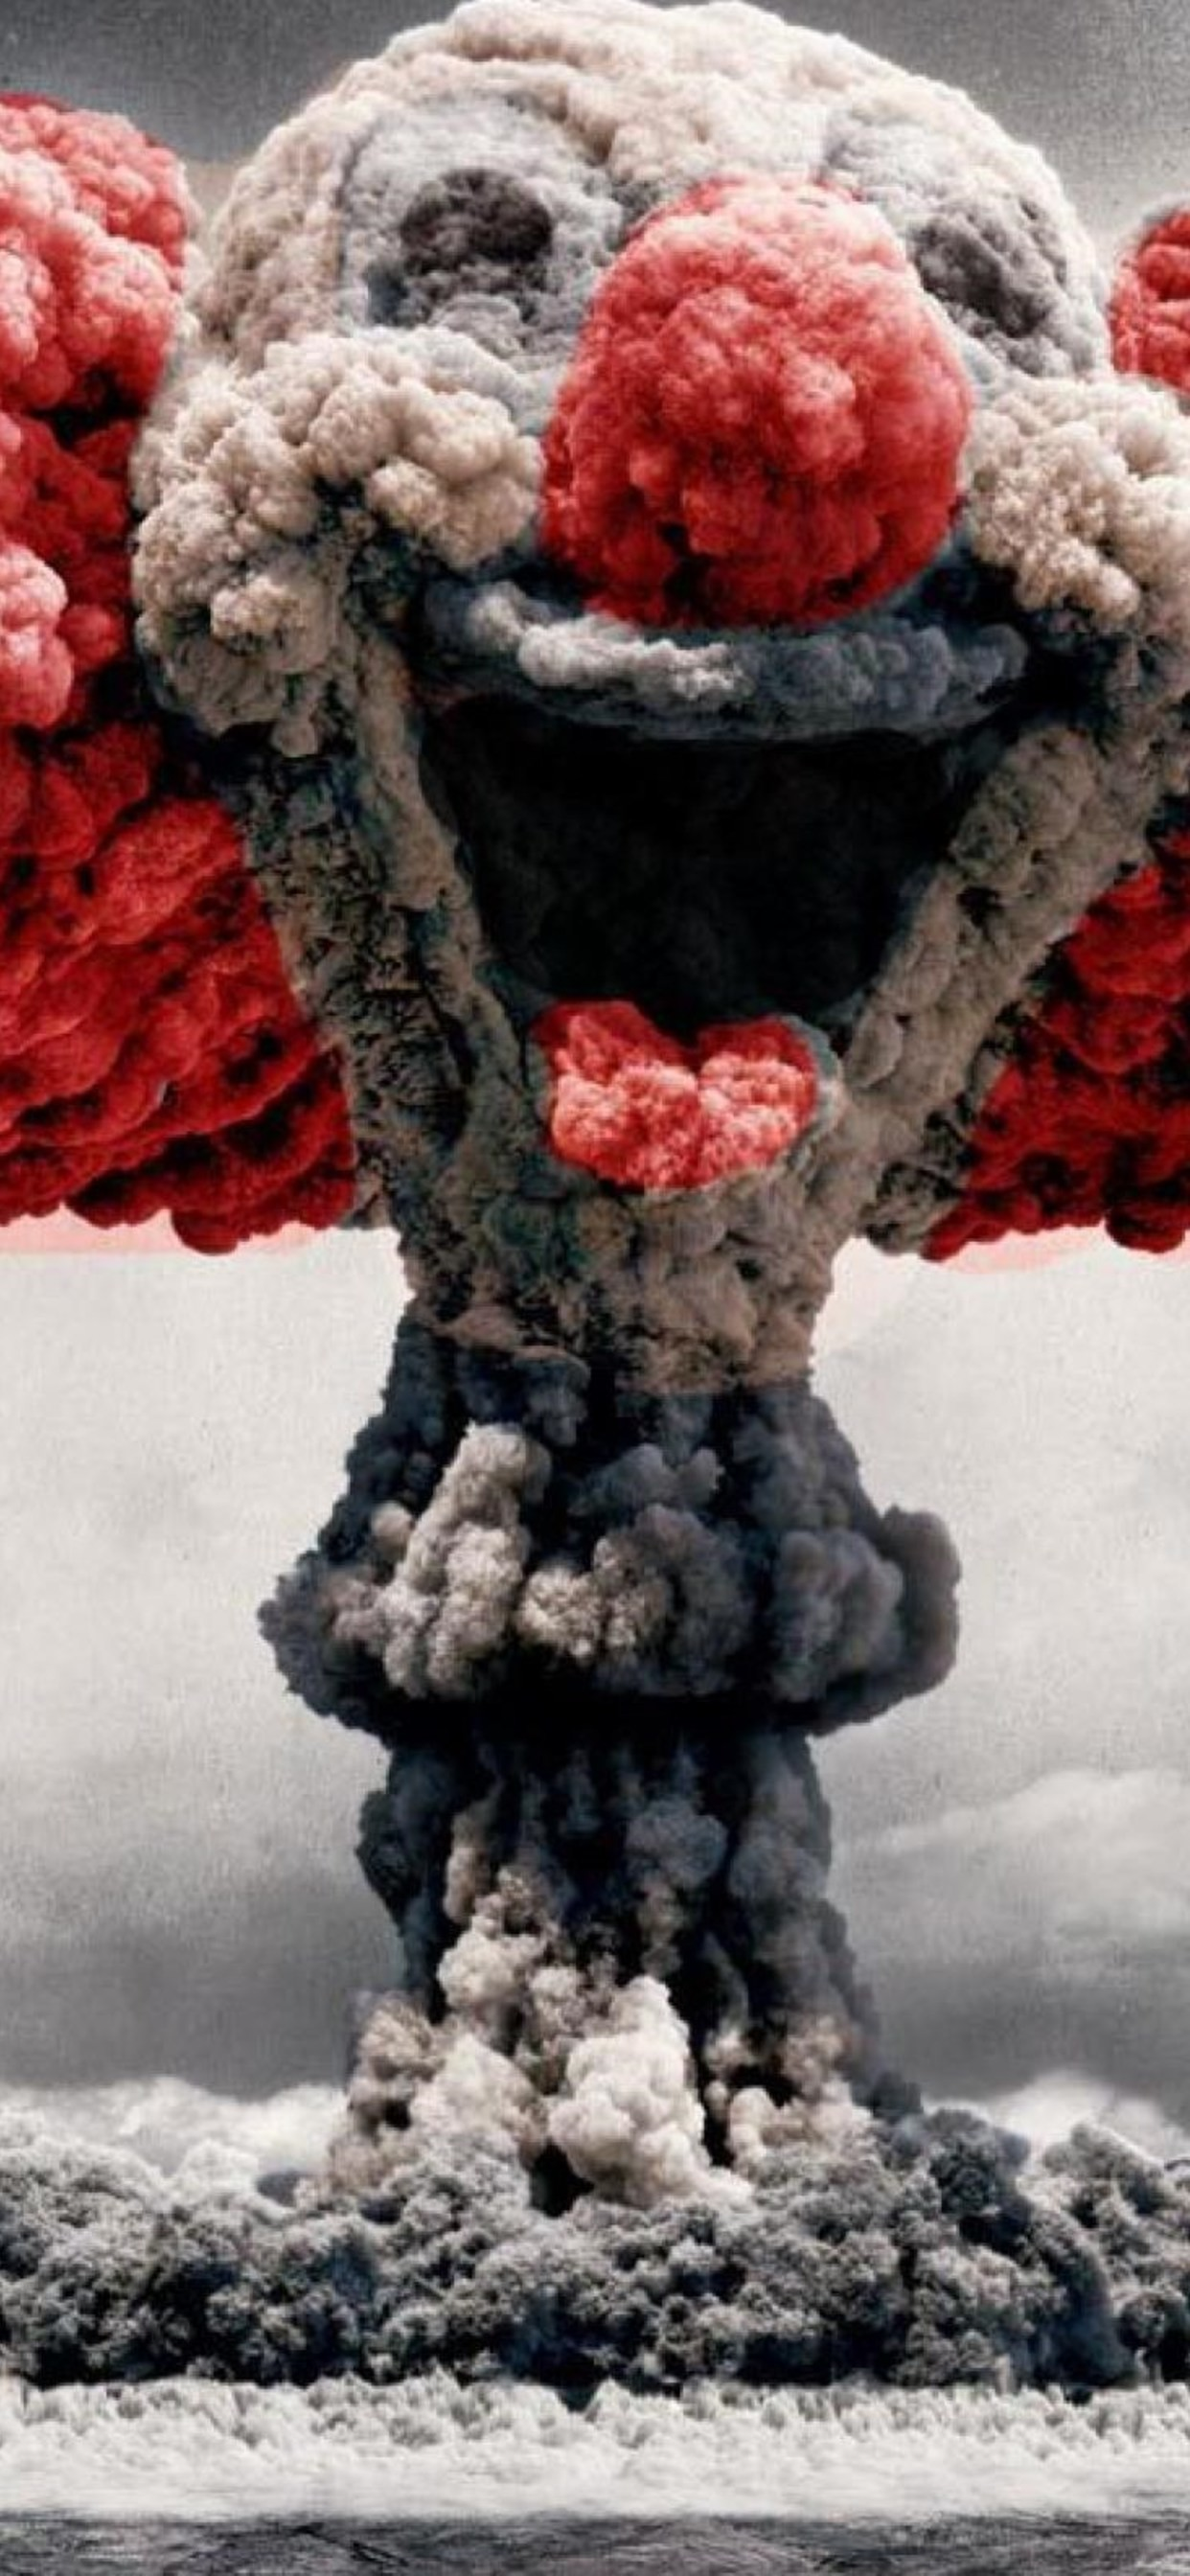 1242x2688 clown-mushroom-cloud-art.jpg